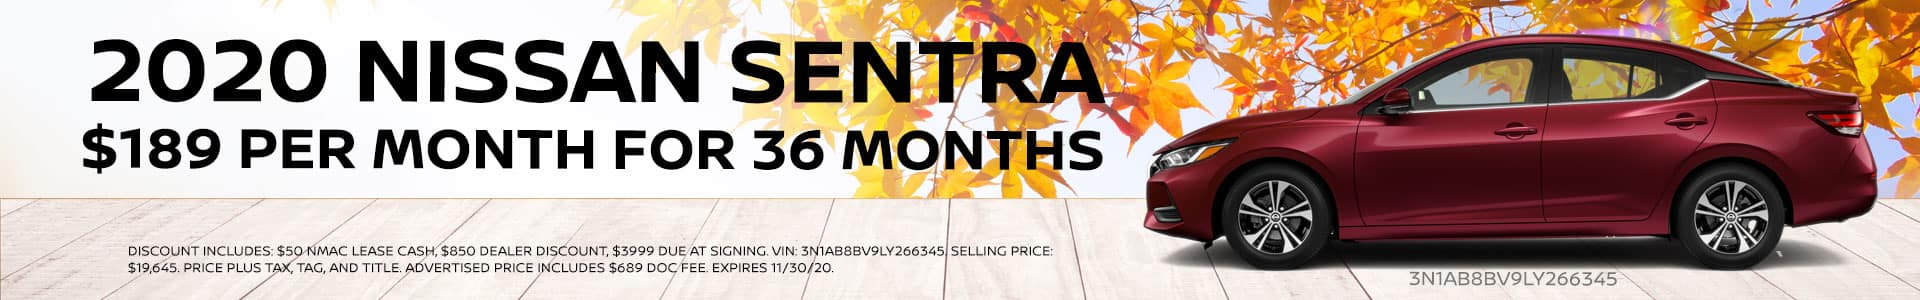 Lease 2020 Nissan Sentra $189 per month